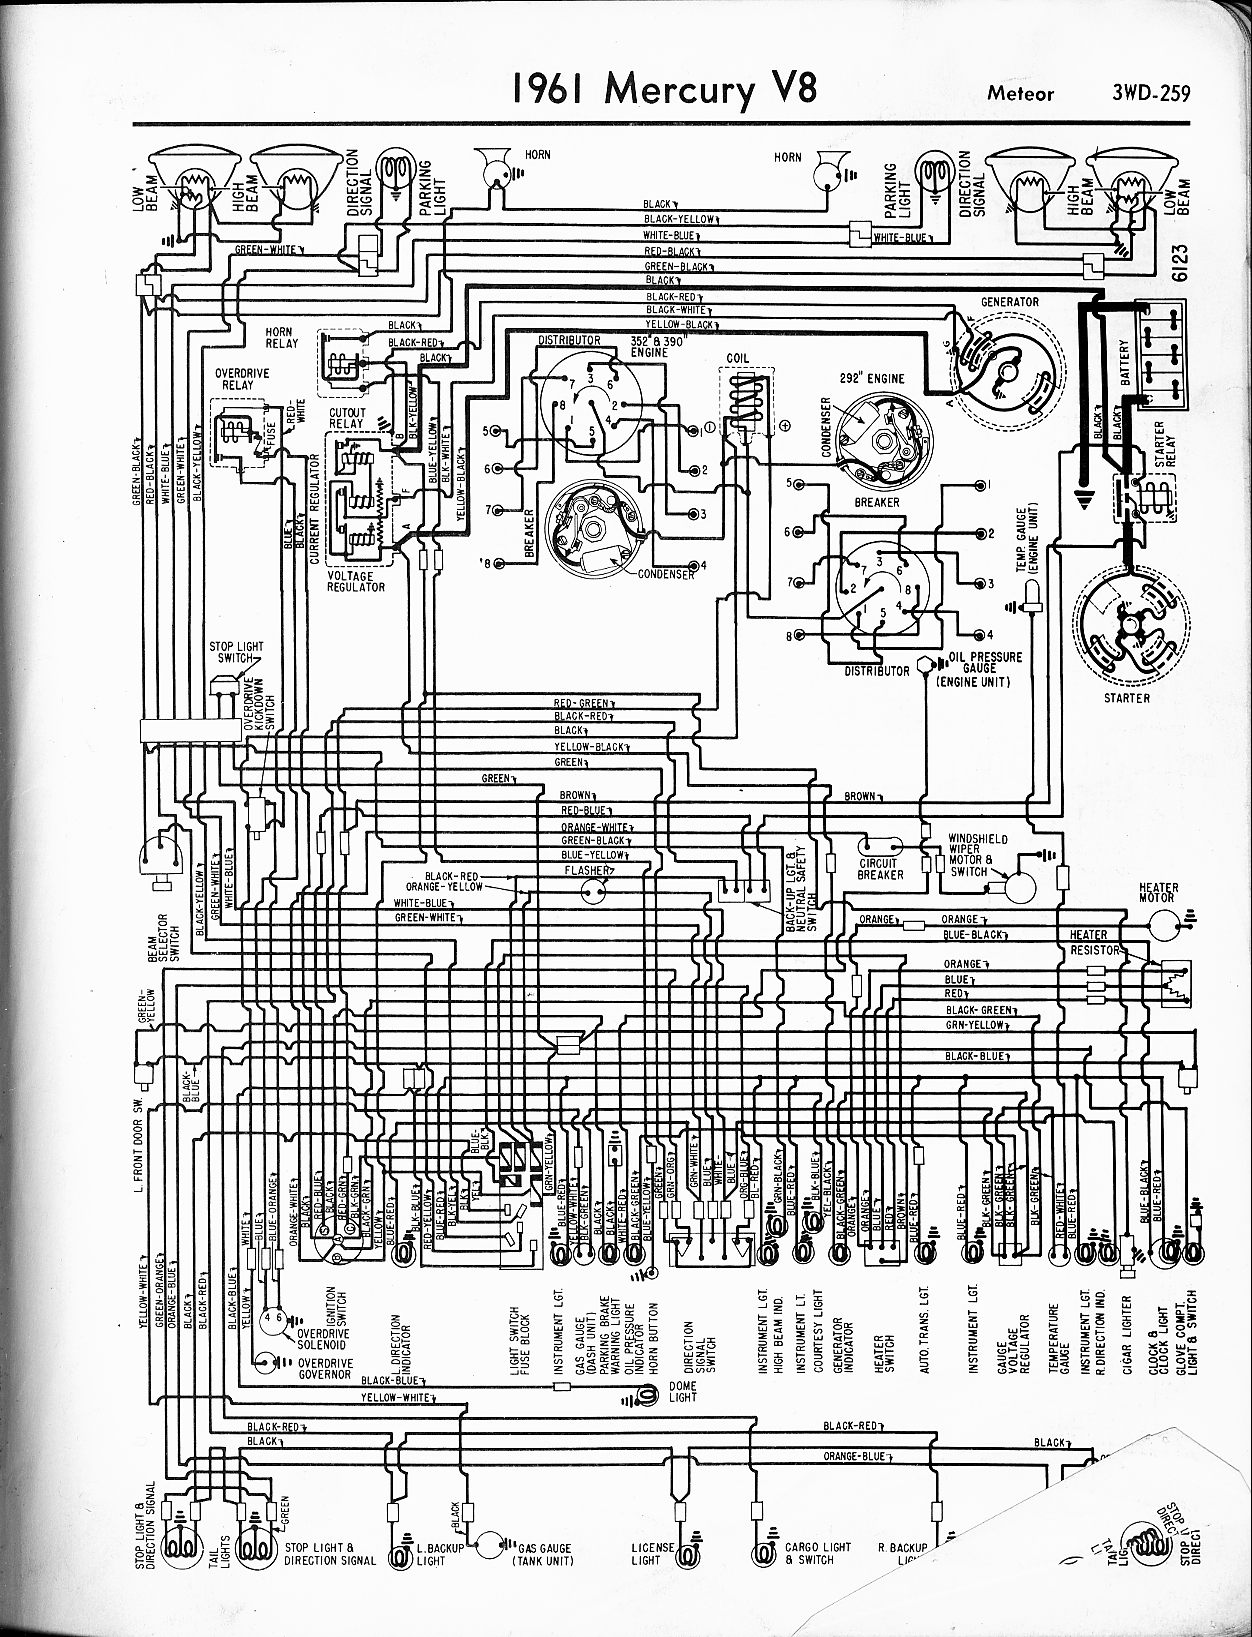 2005 mercury outboard ignition switch wiring diagram plug and et auto